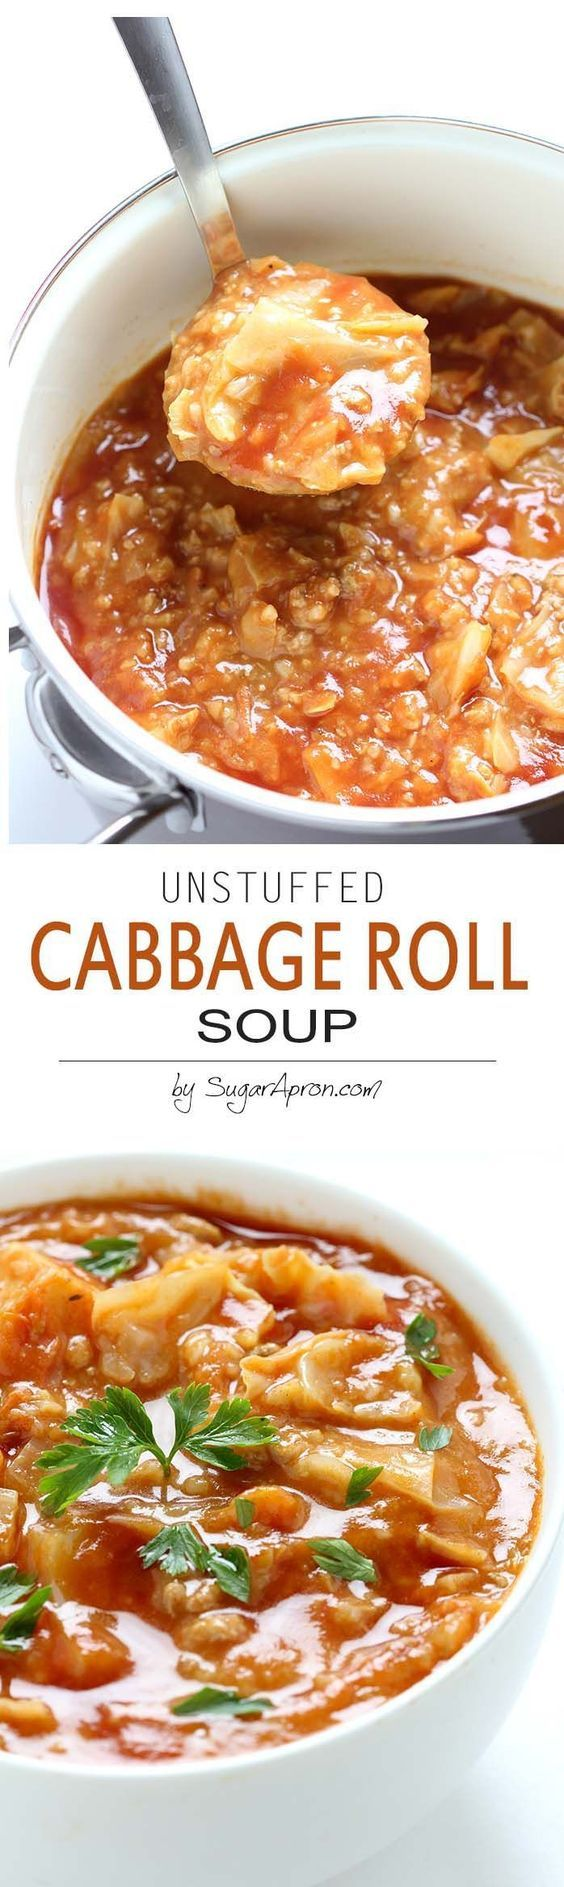 Comfort food on a cold winter's night, this Cabbage Roll Soup is faster alternative to traditional stuffed cabbage rolls, yet I can assure you that it tastes just as good.